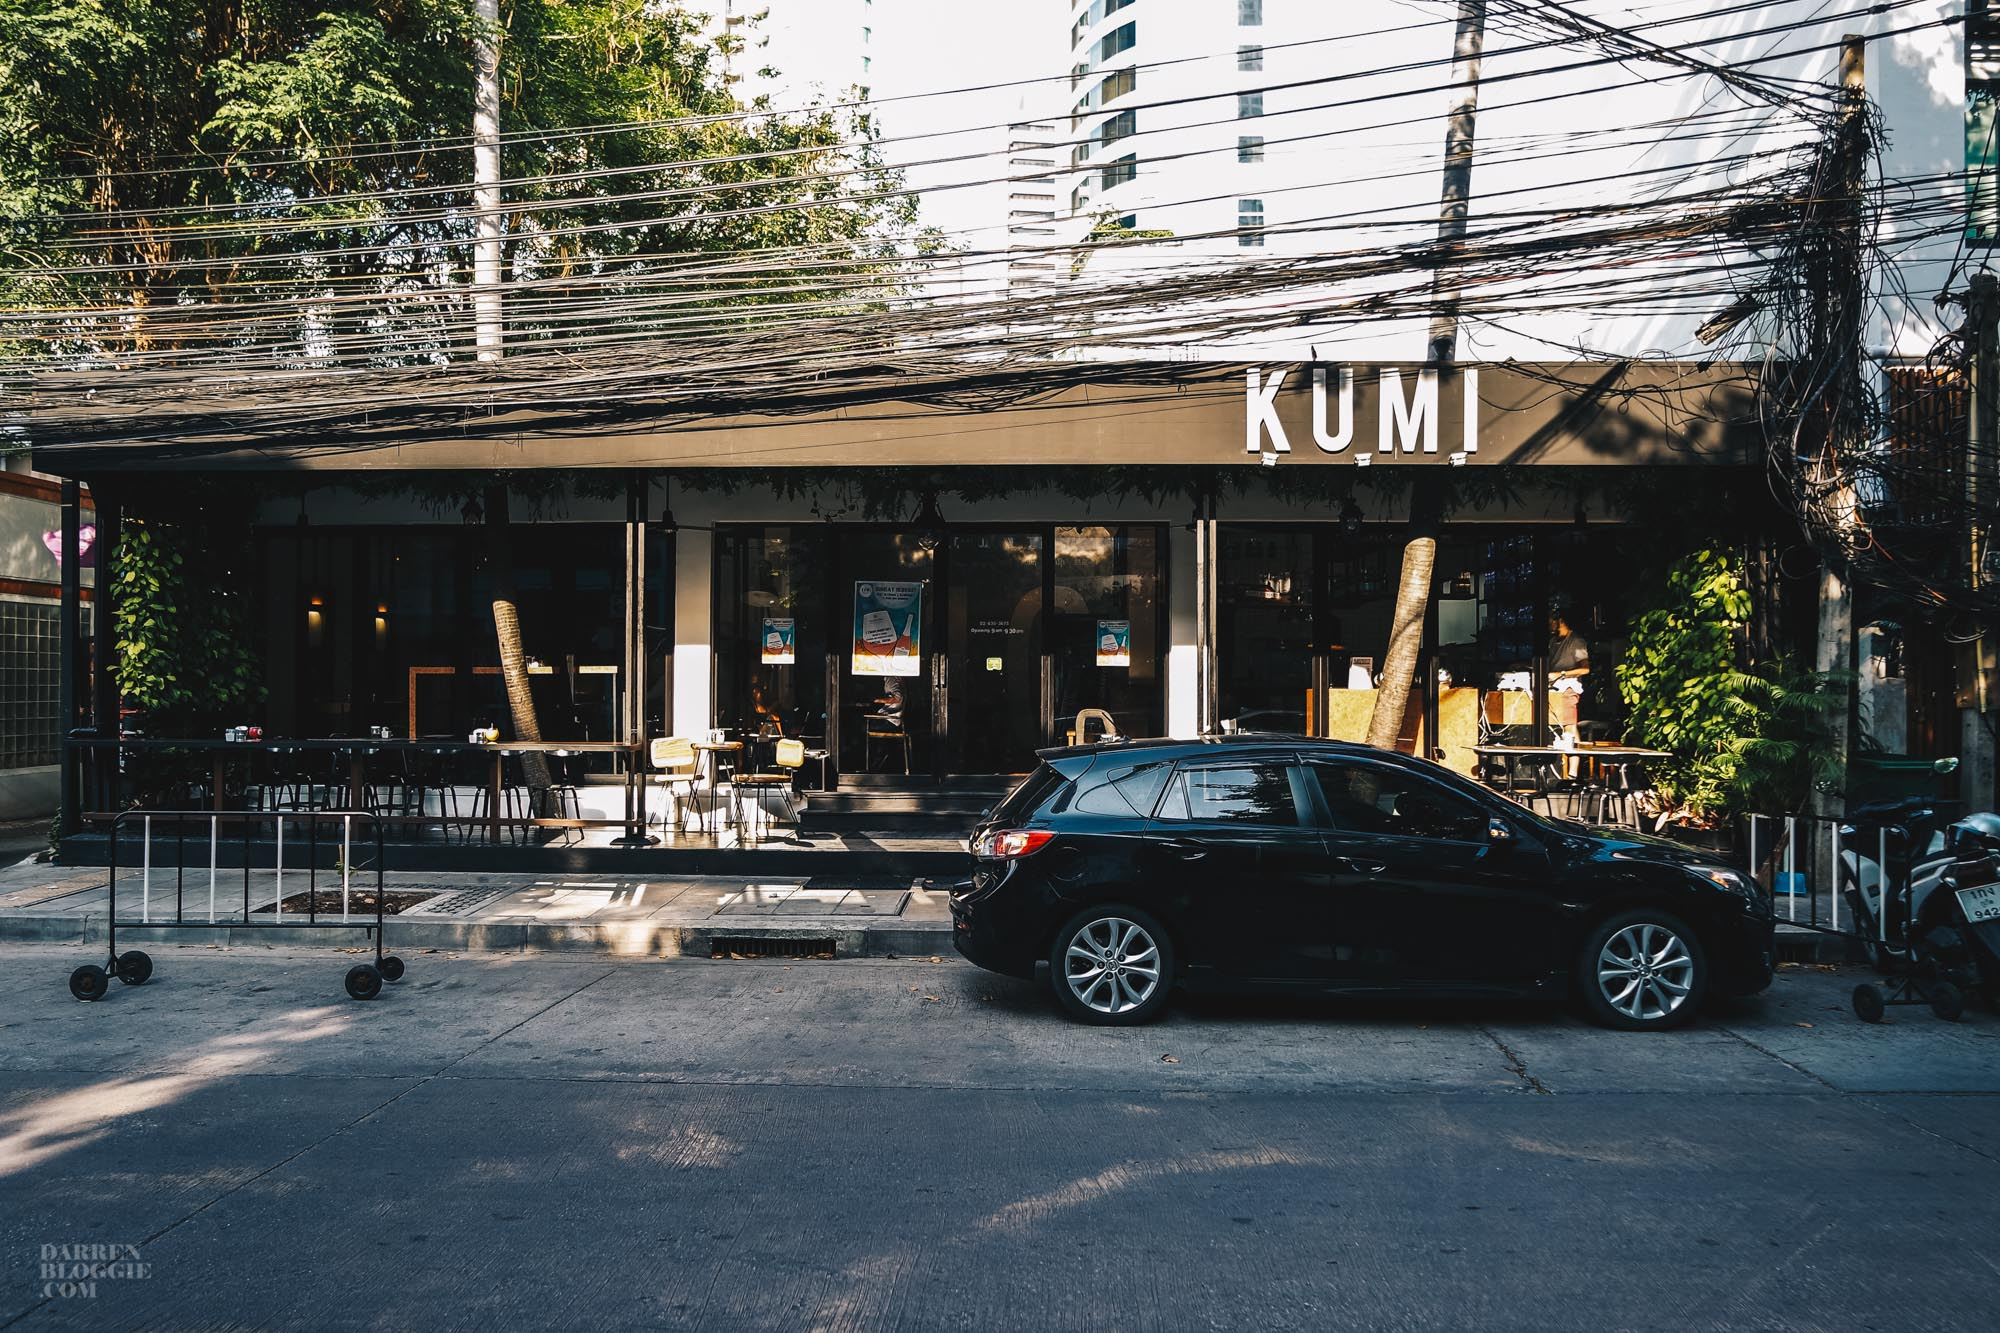 Kumi Restaurant & Healthy Corner - Clean Bites that go Beyond Salad in Bangkok